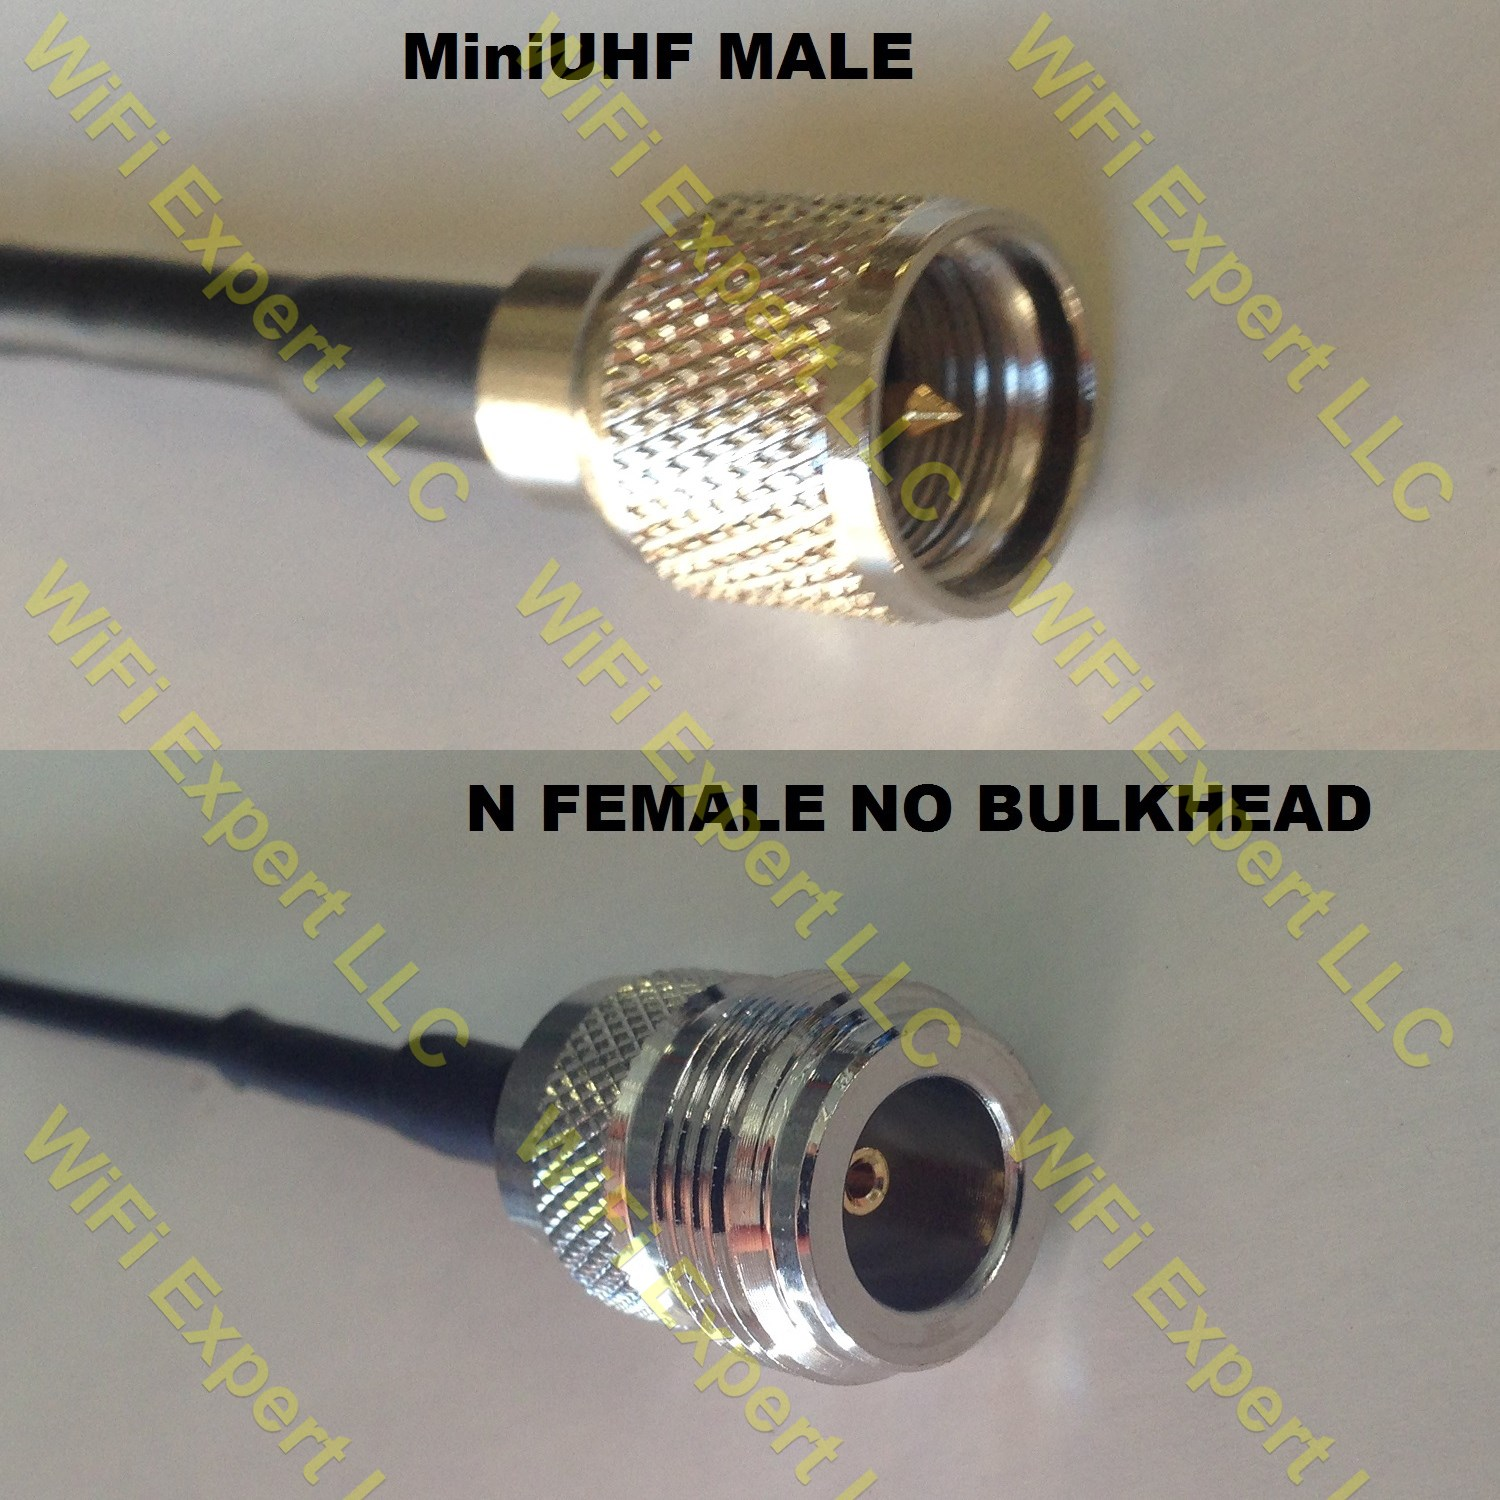 USA-CA RG400 PL259 UHF Male to MINI UHF MALE Coaxial RF Pigtail Cable